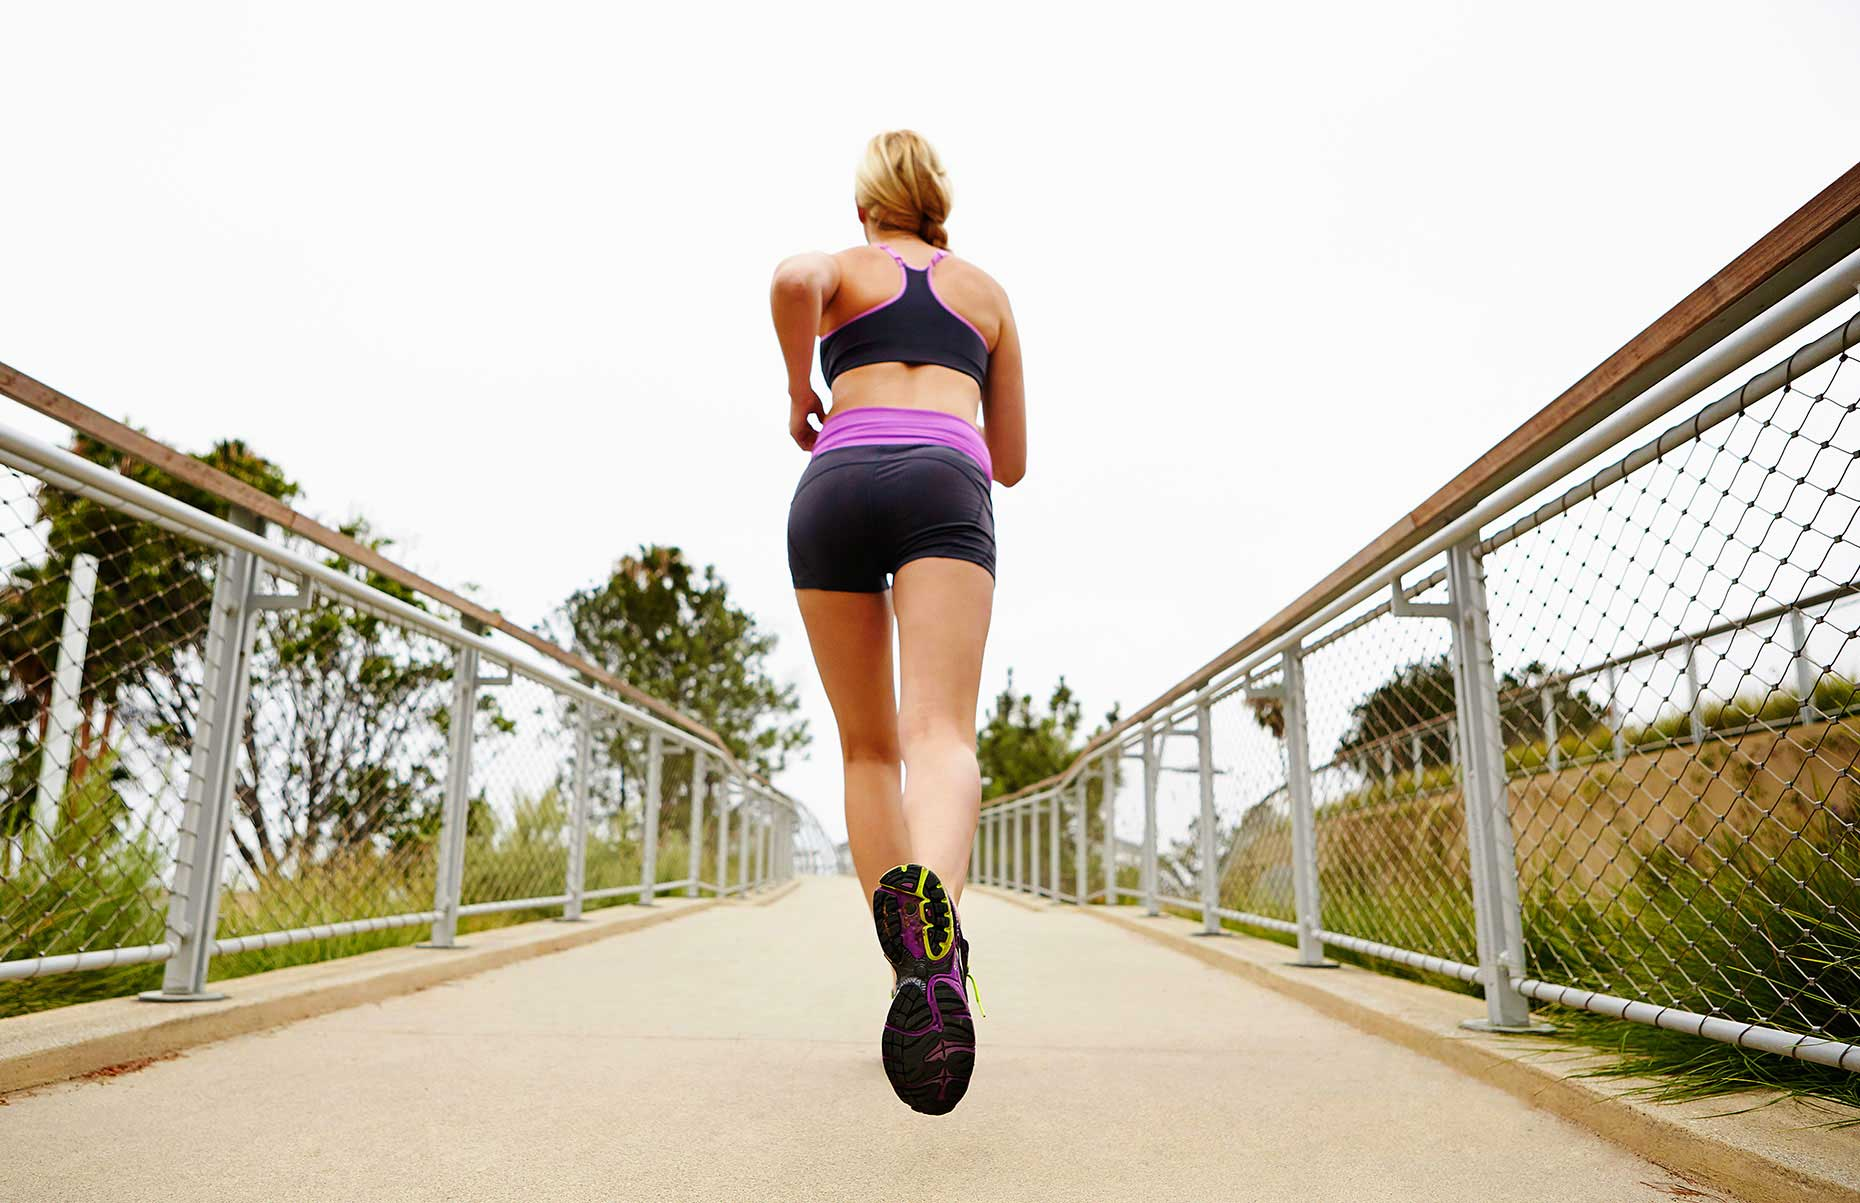 Photography_Sports and Fitness_Blond Woman Jogging on Walkway-Tony Garcia